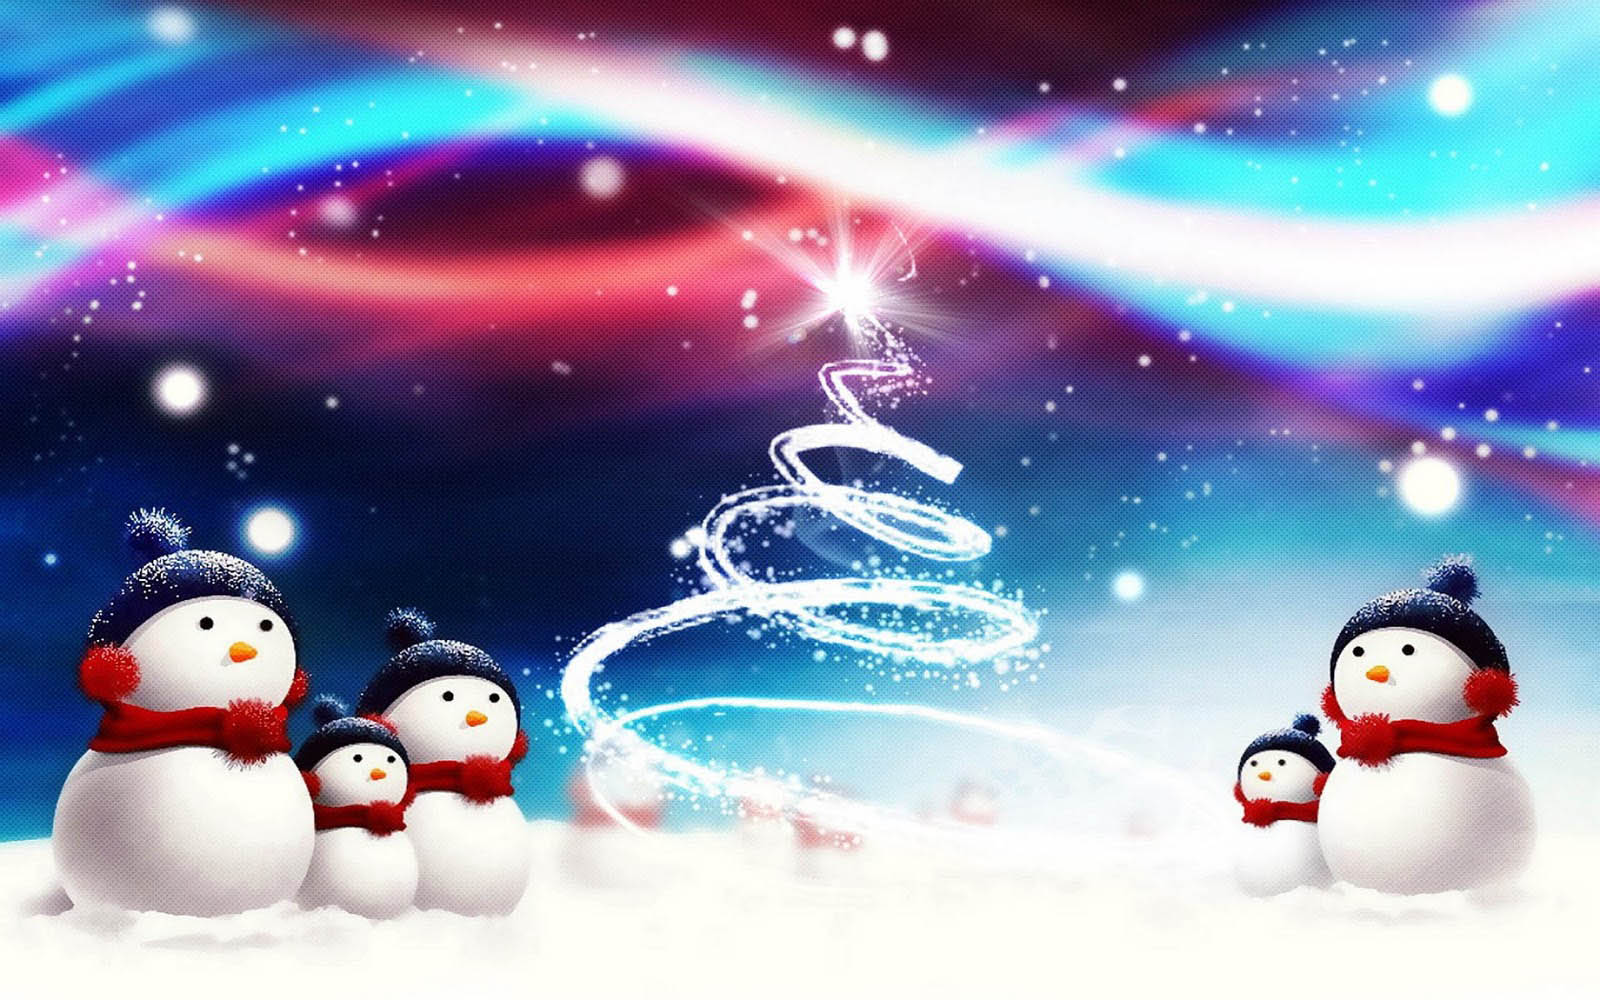 wallpapers Snowman Backgrounds